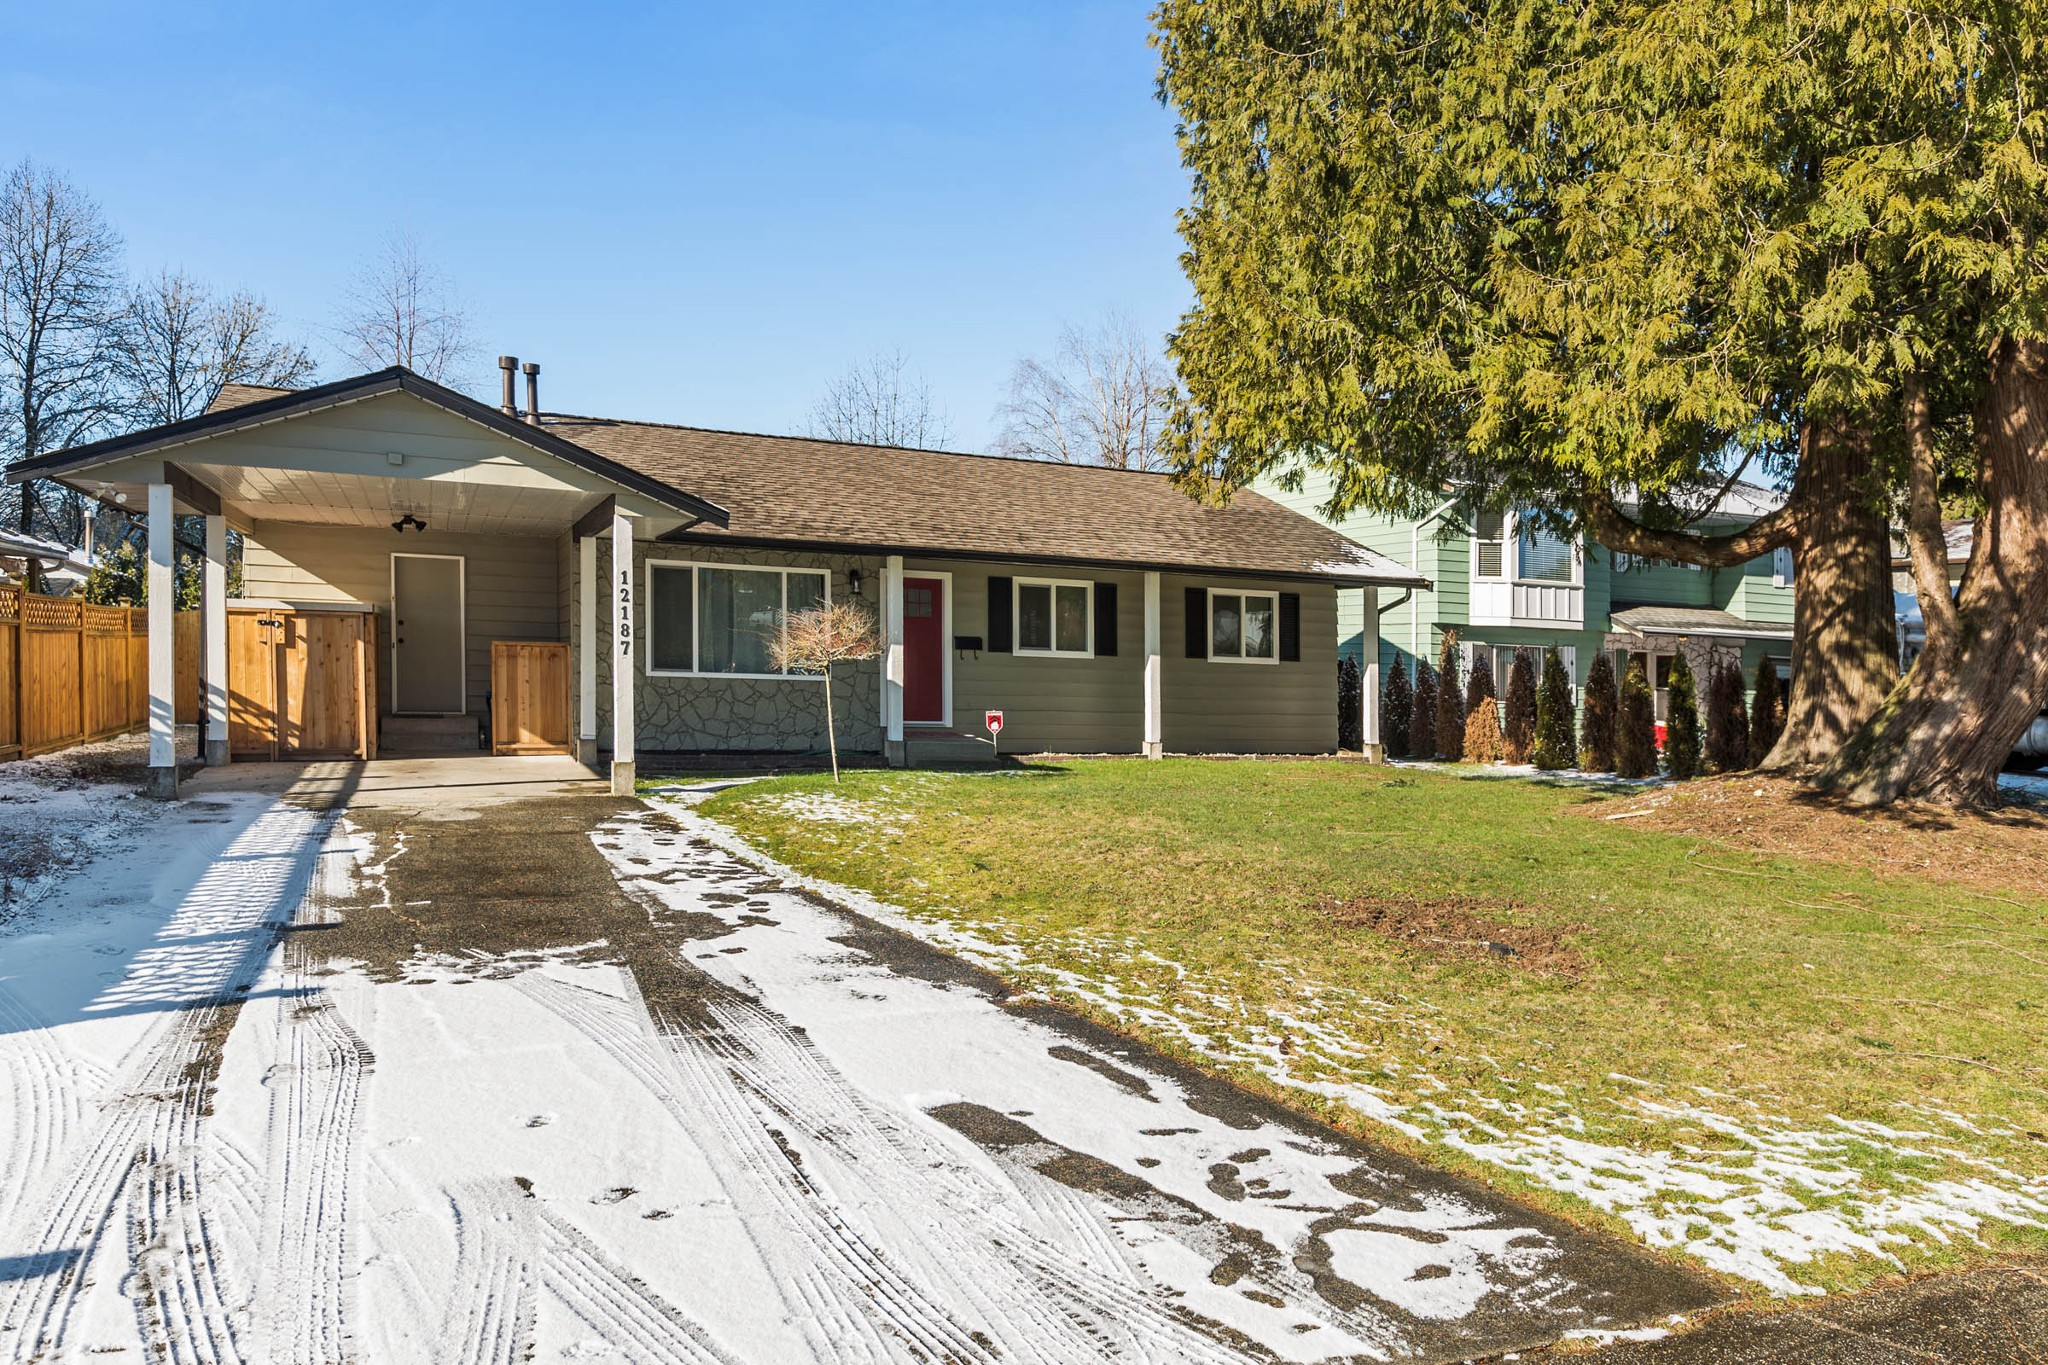 Main Photo: 12187 210 Street in Maple Ridge: Northwest Maple Ridge House for sale : MLS®# R2242183